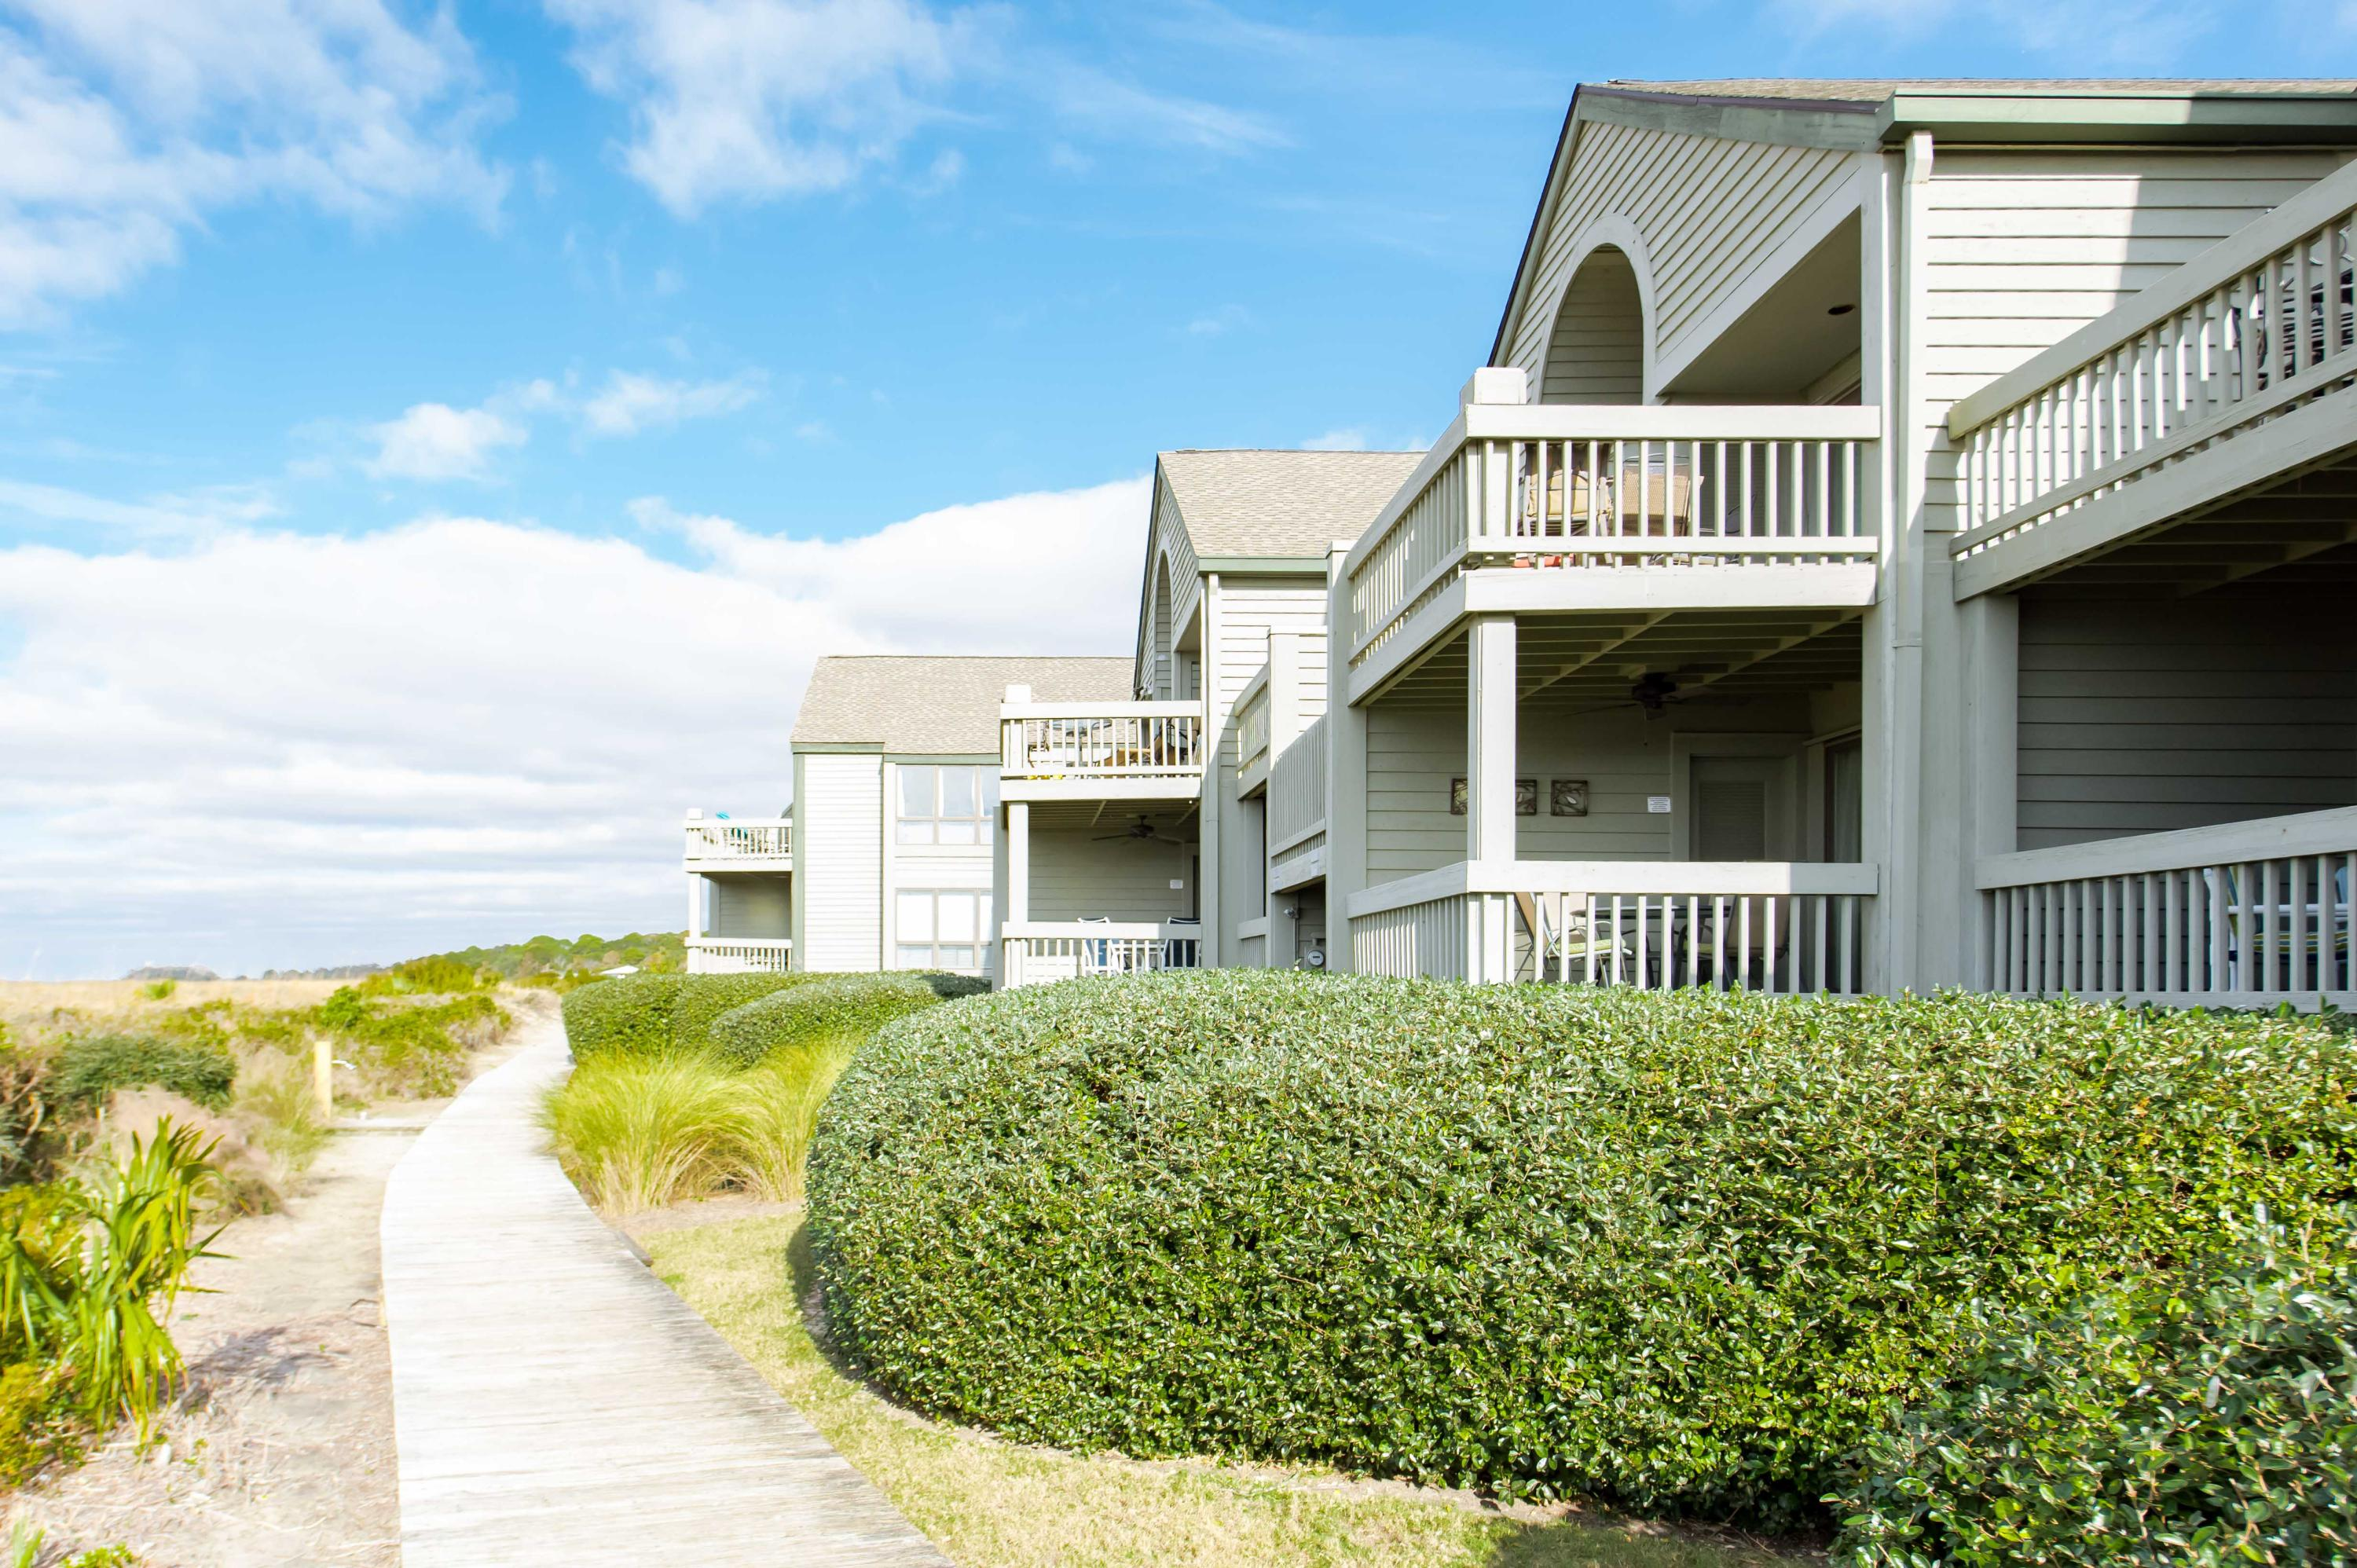 Seabrook Island Homes For Sale - 1307 Pelican Watch Villas, Seabrook Island, SC - 32